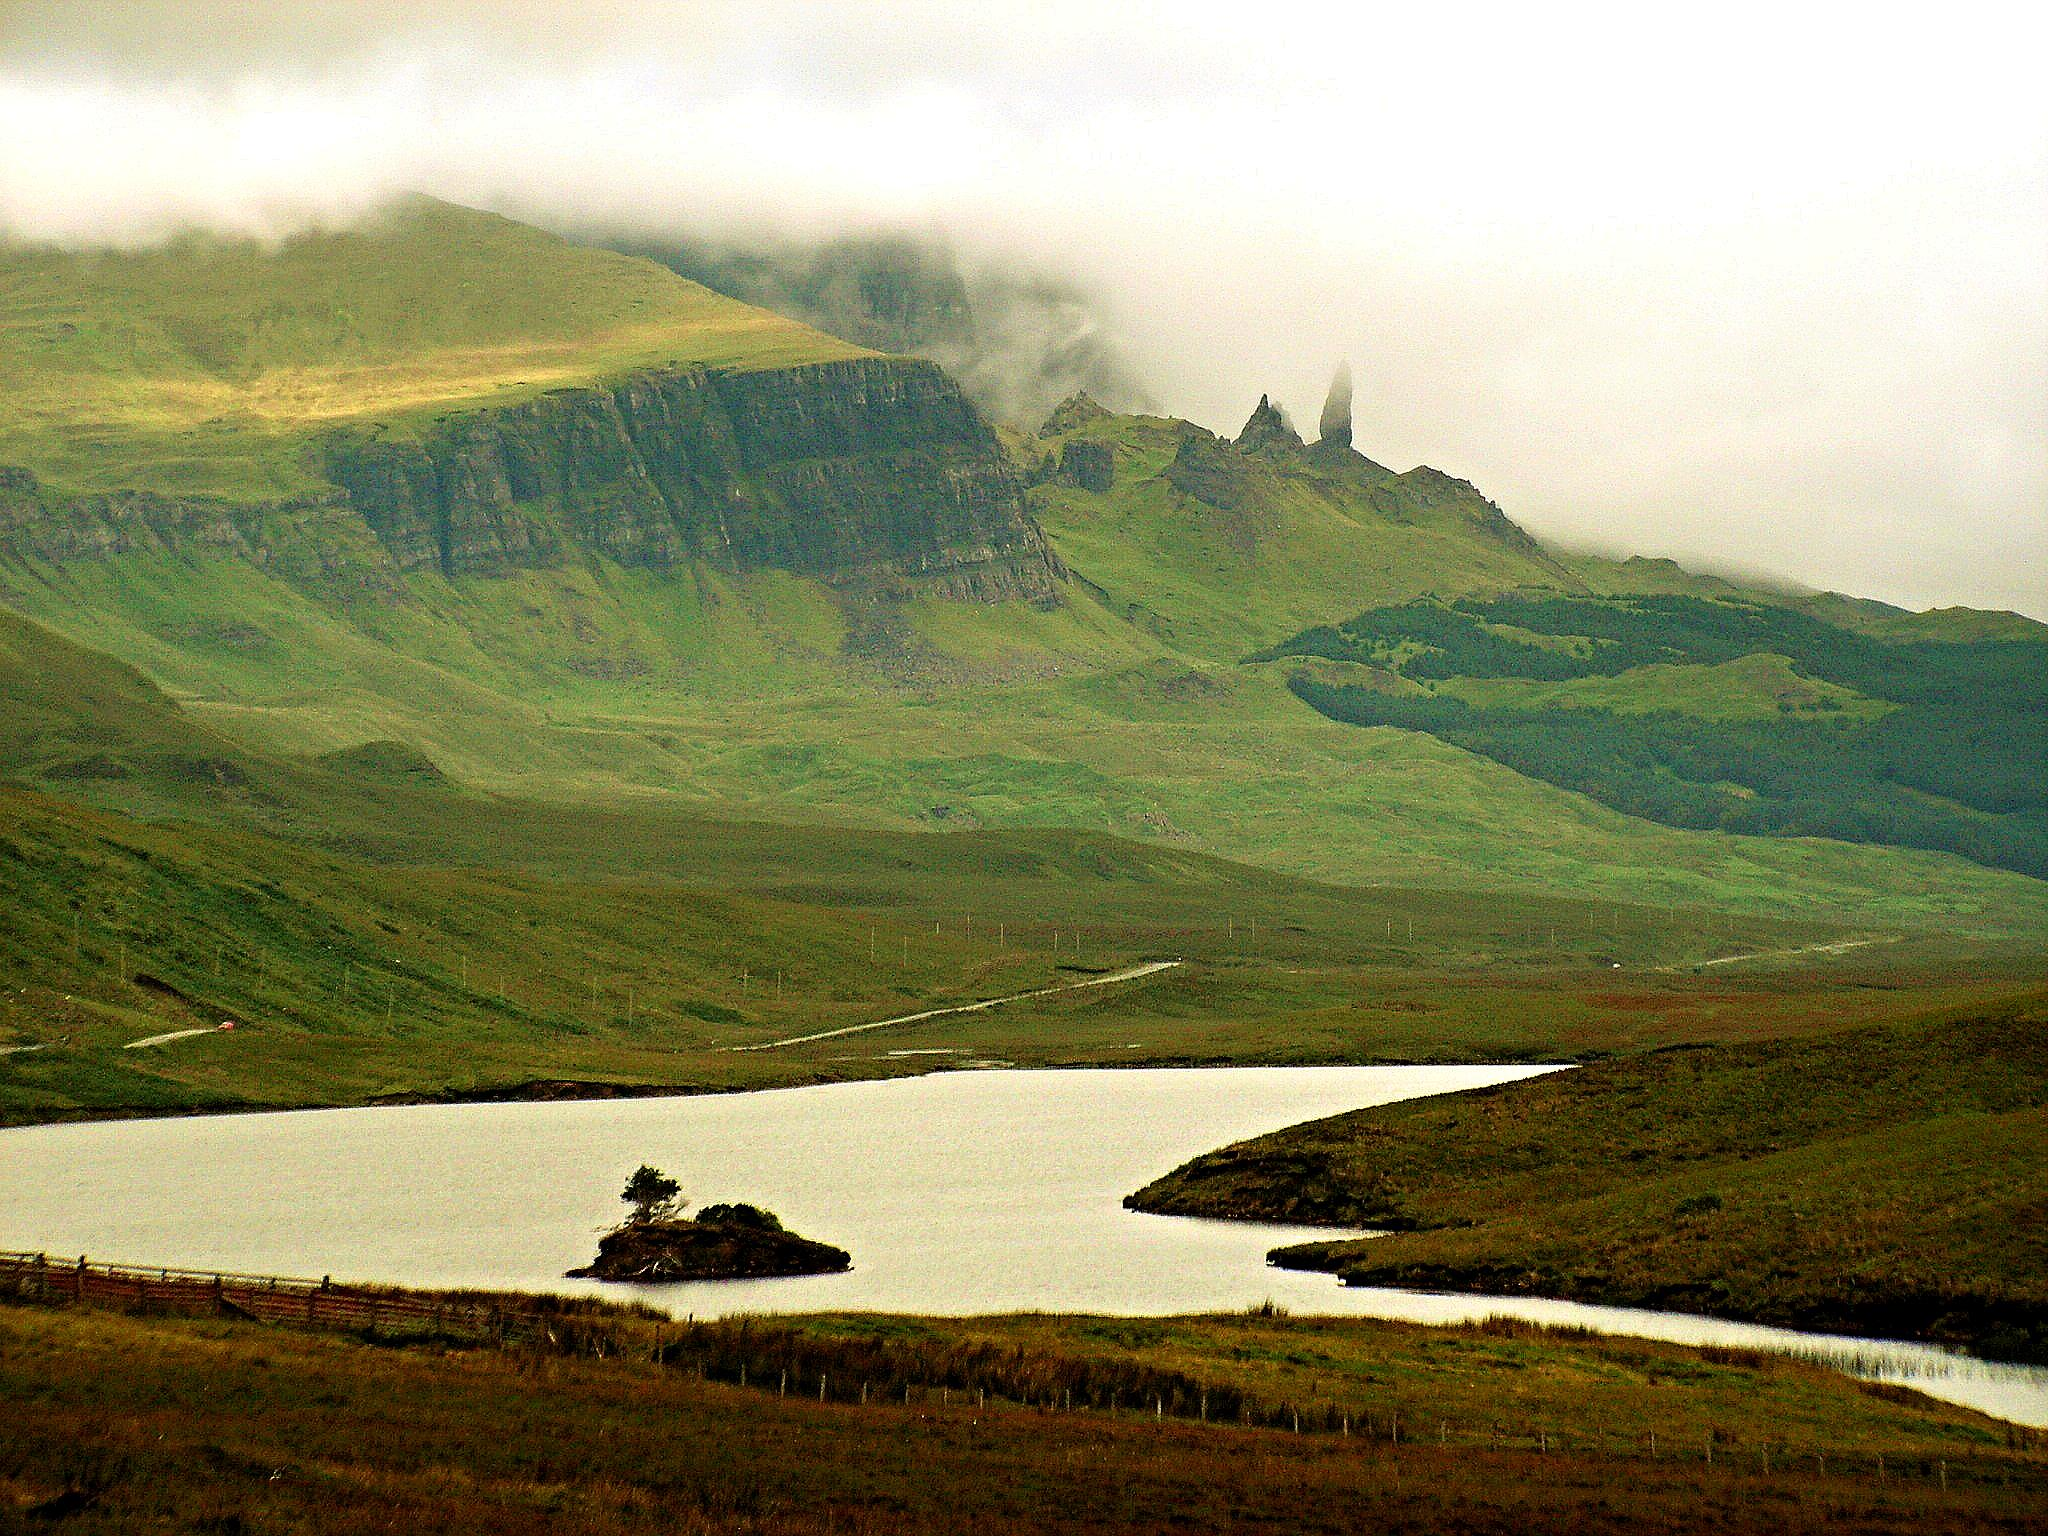 The Old Man of Storr by romana.svatonova.3